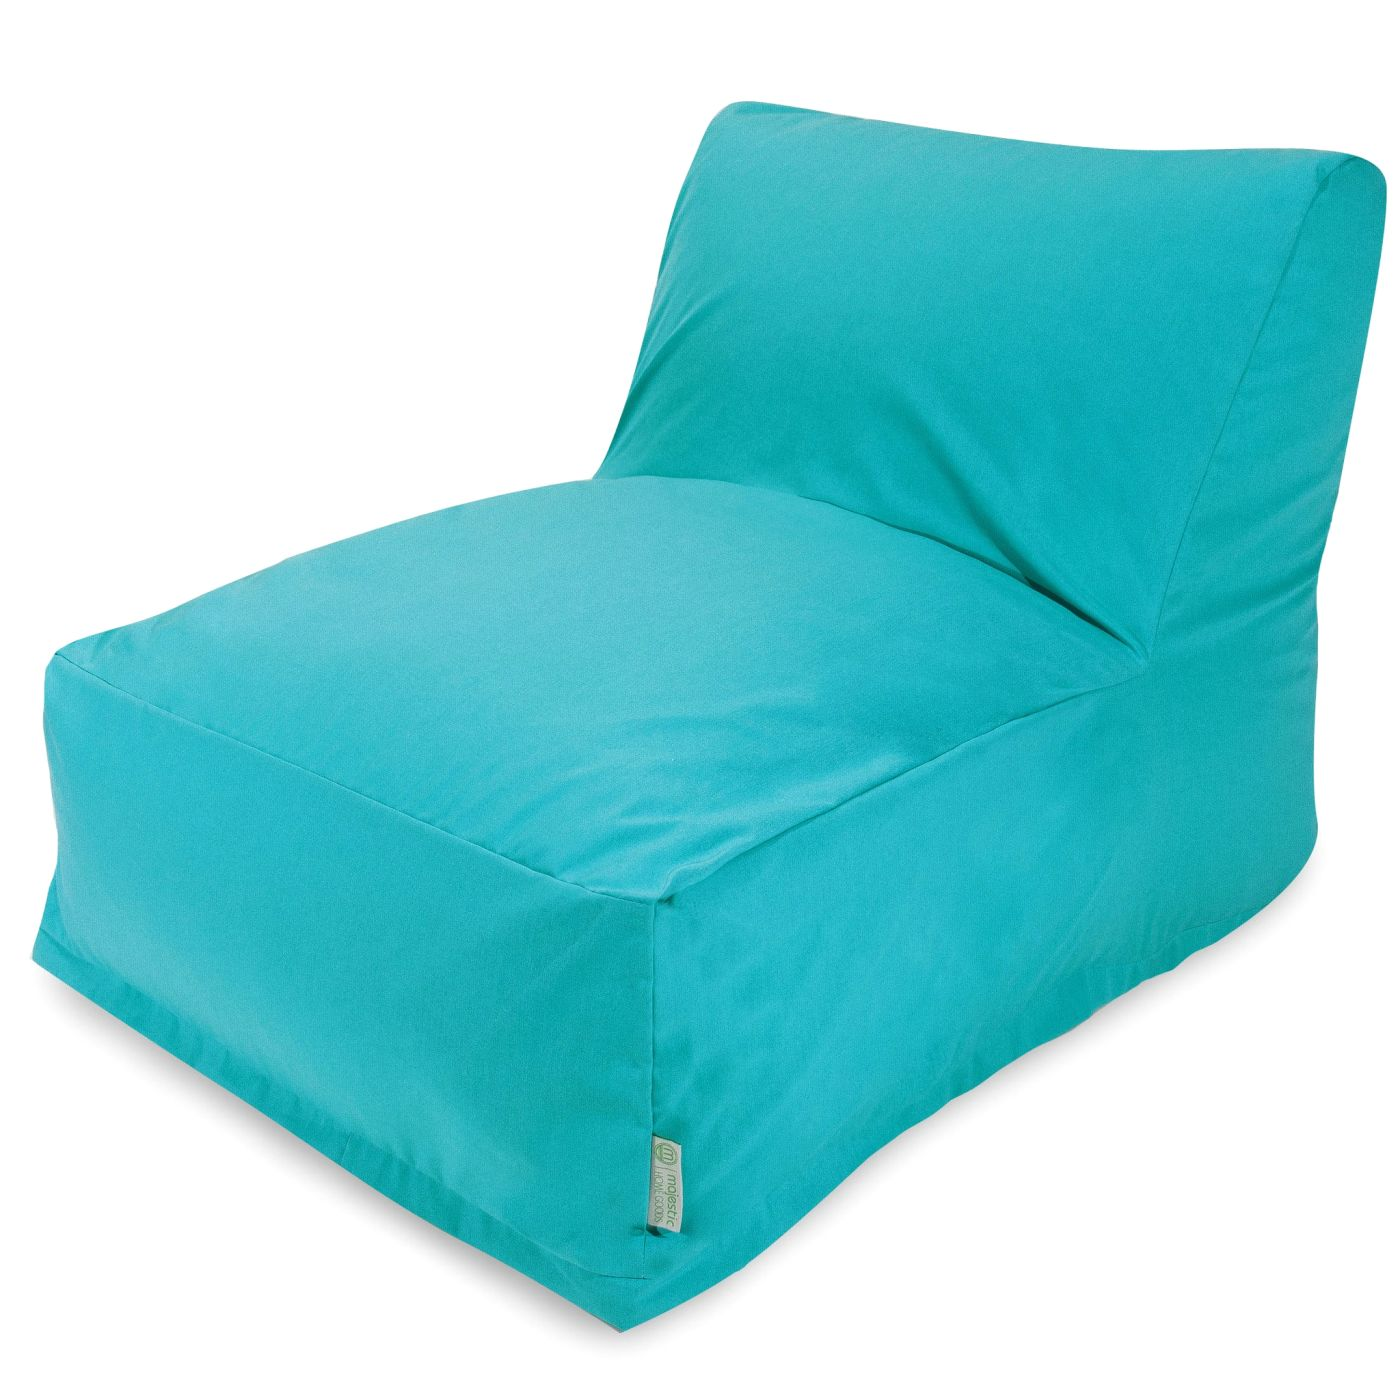 Buy Majestic Home 85907238035 Teal Bean Bag Chair Lounger